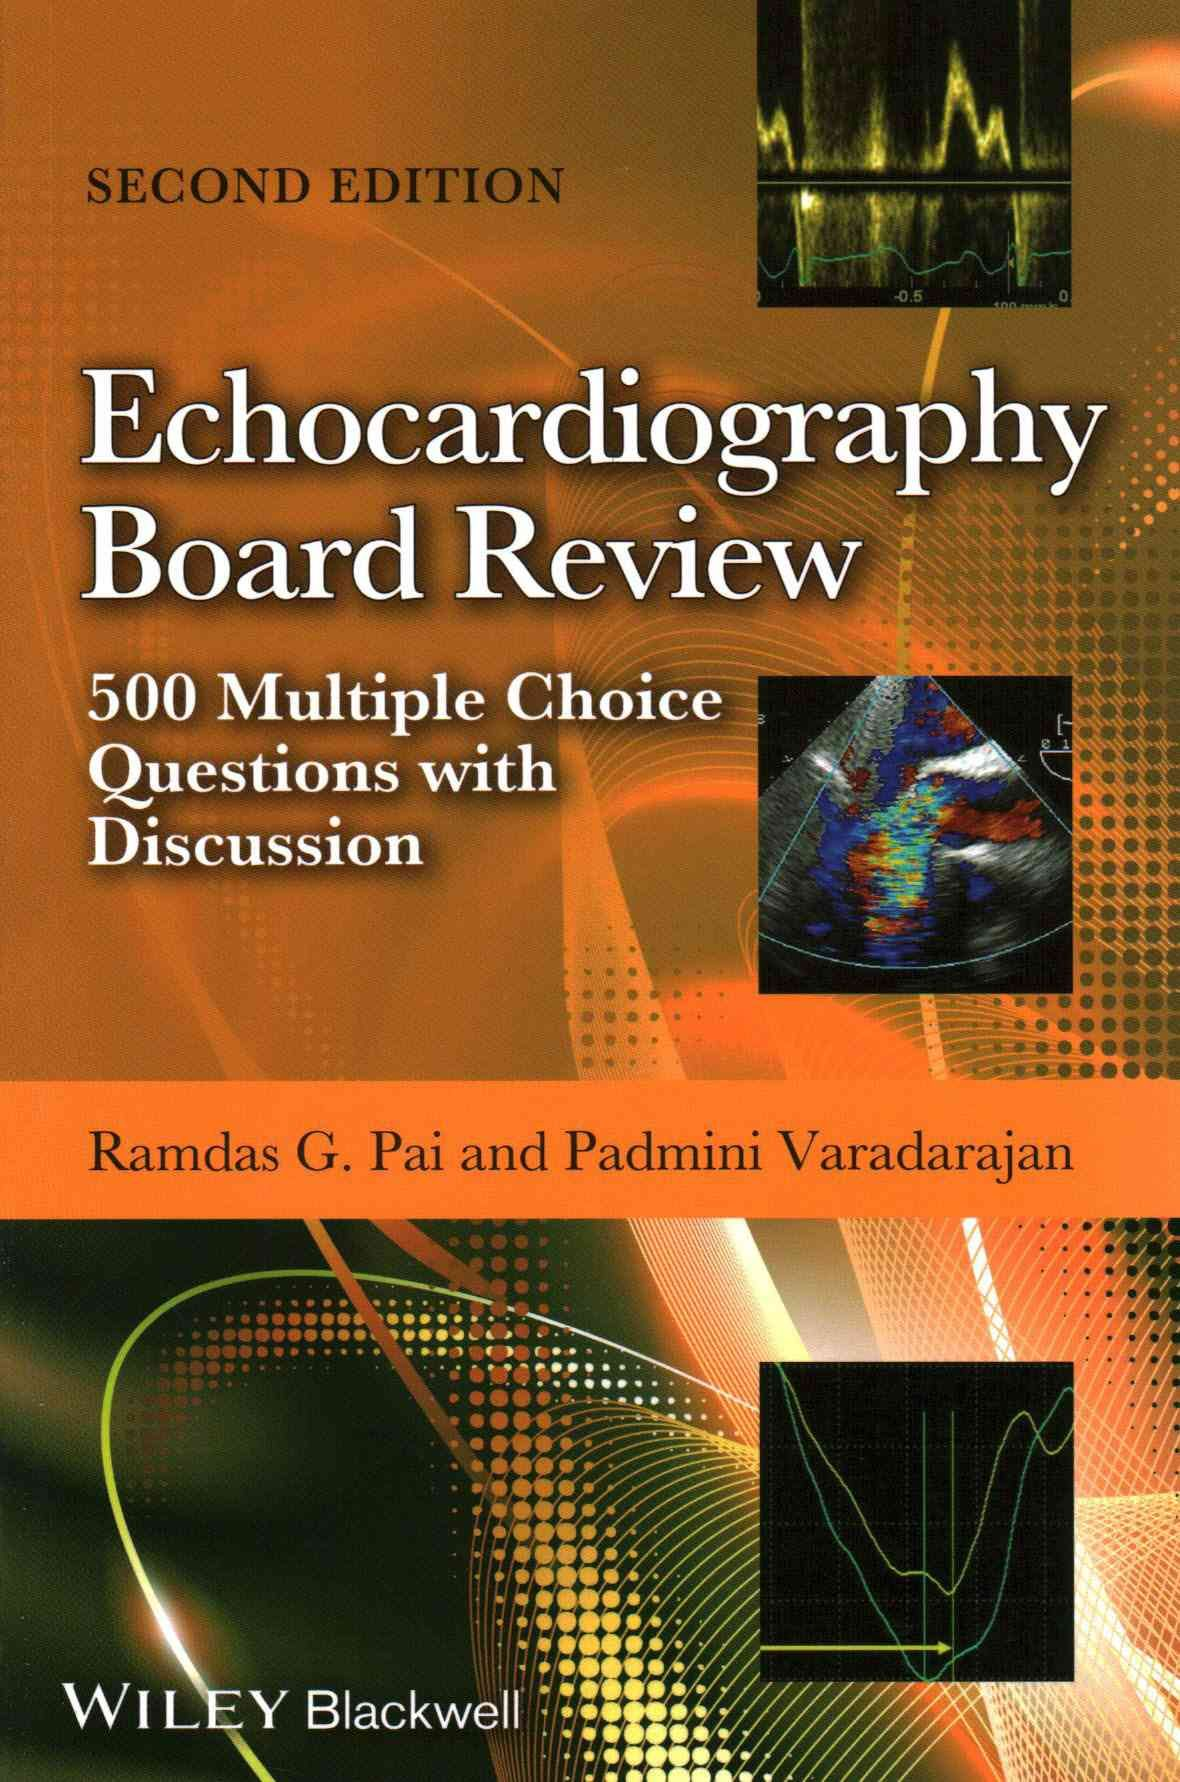 Echocardiography Board Review 500 Multiple Choice